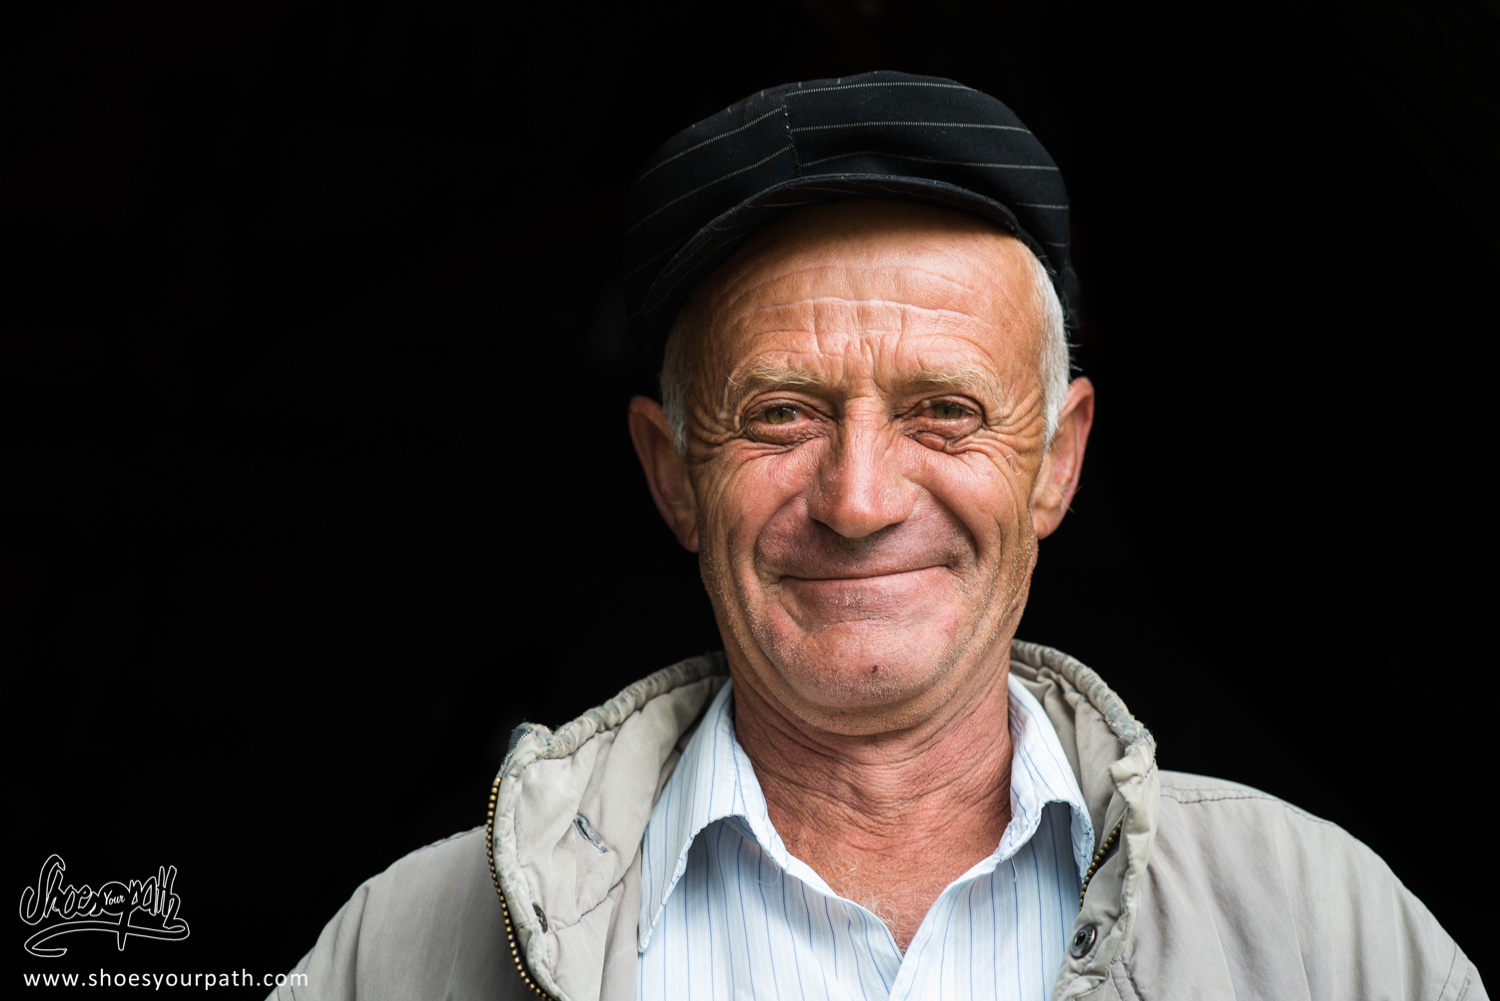 The man who offered us a few raki glasses in Doberdöl - Peaks of the Balkans